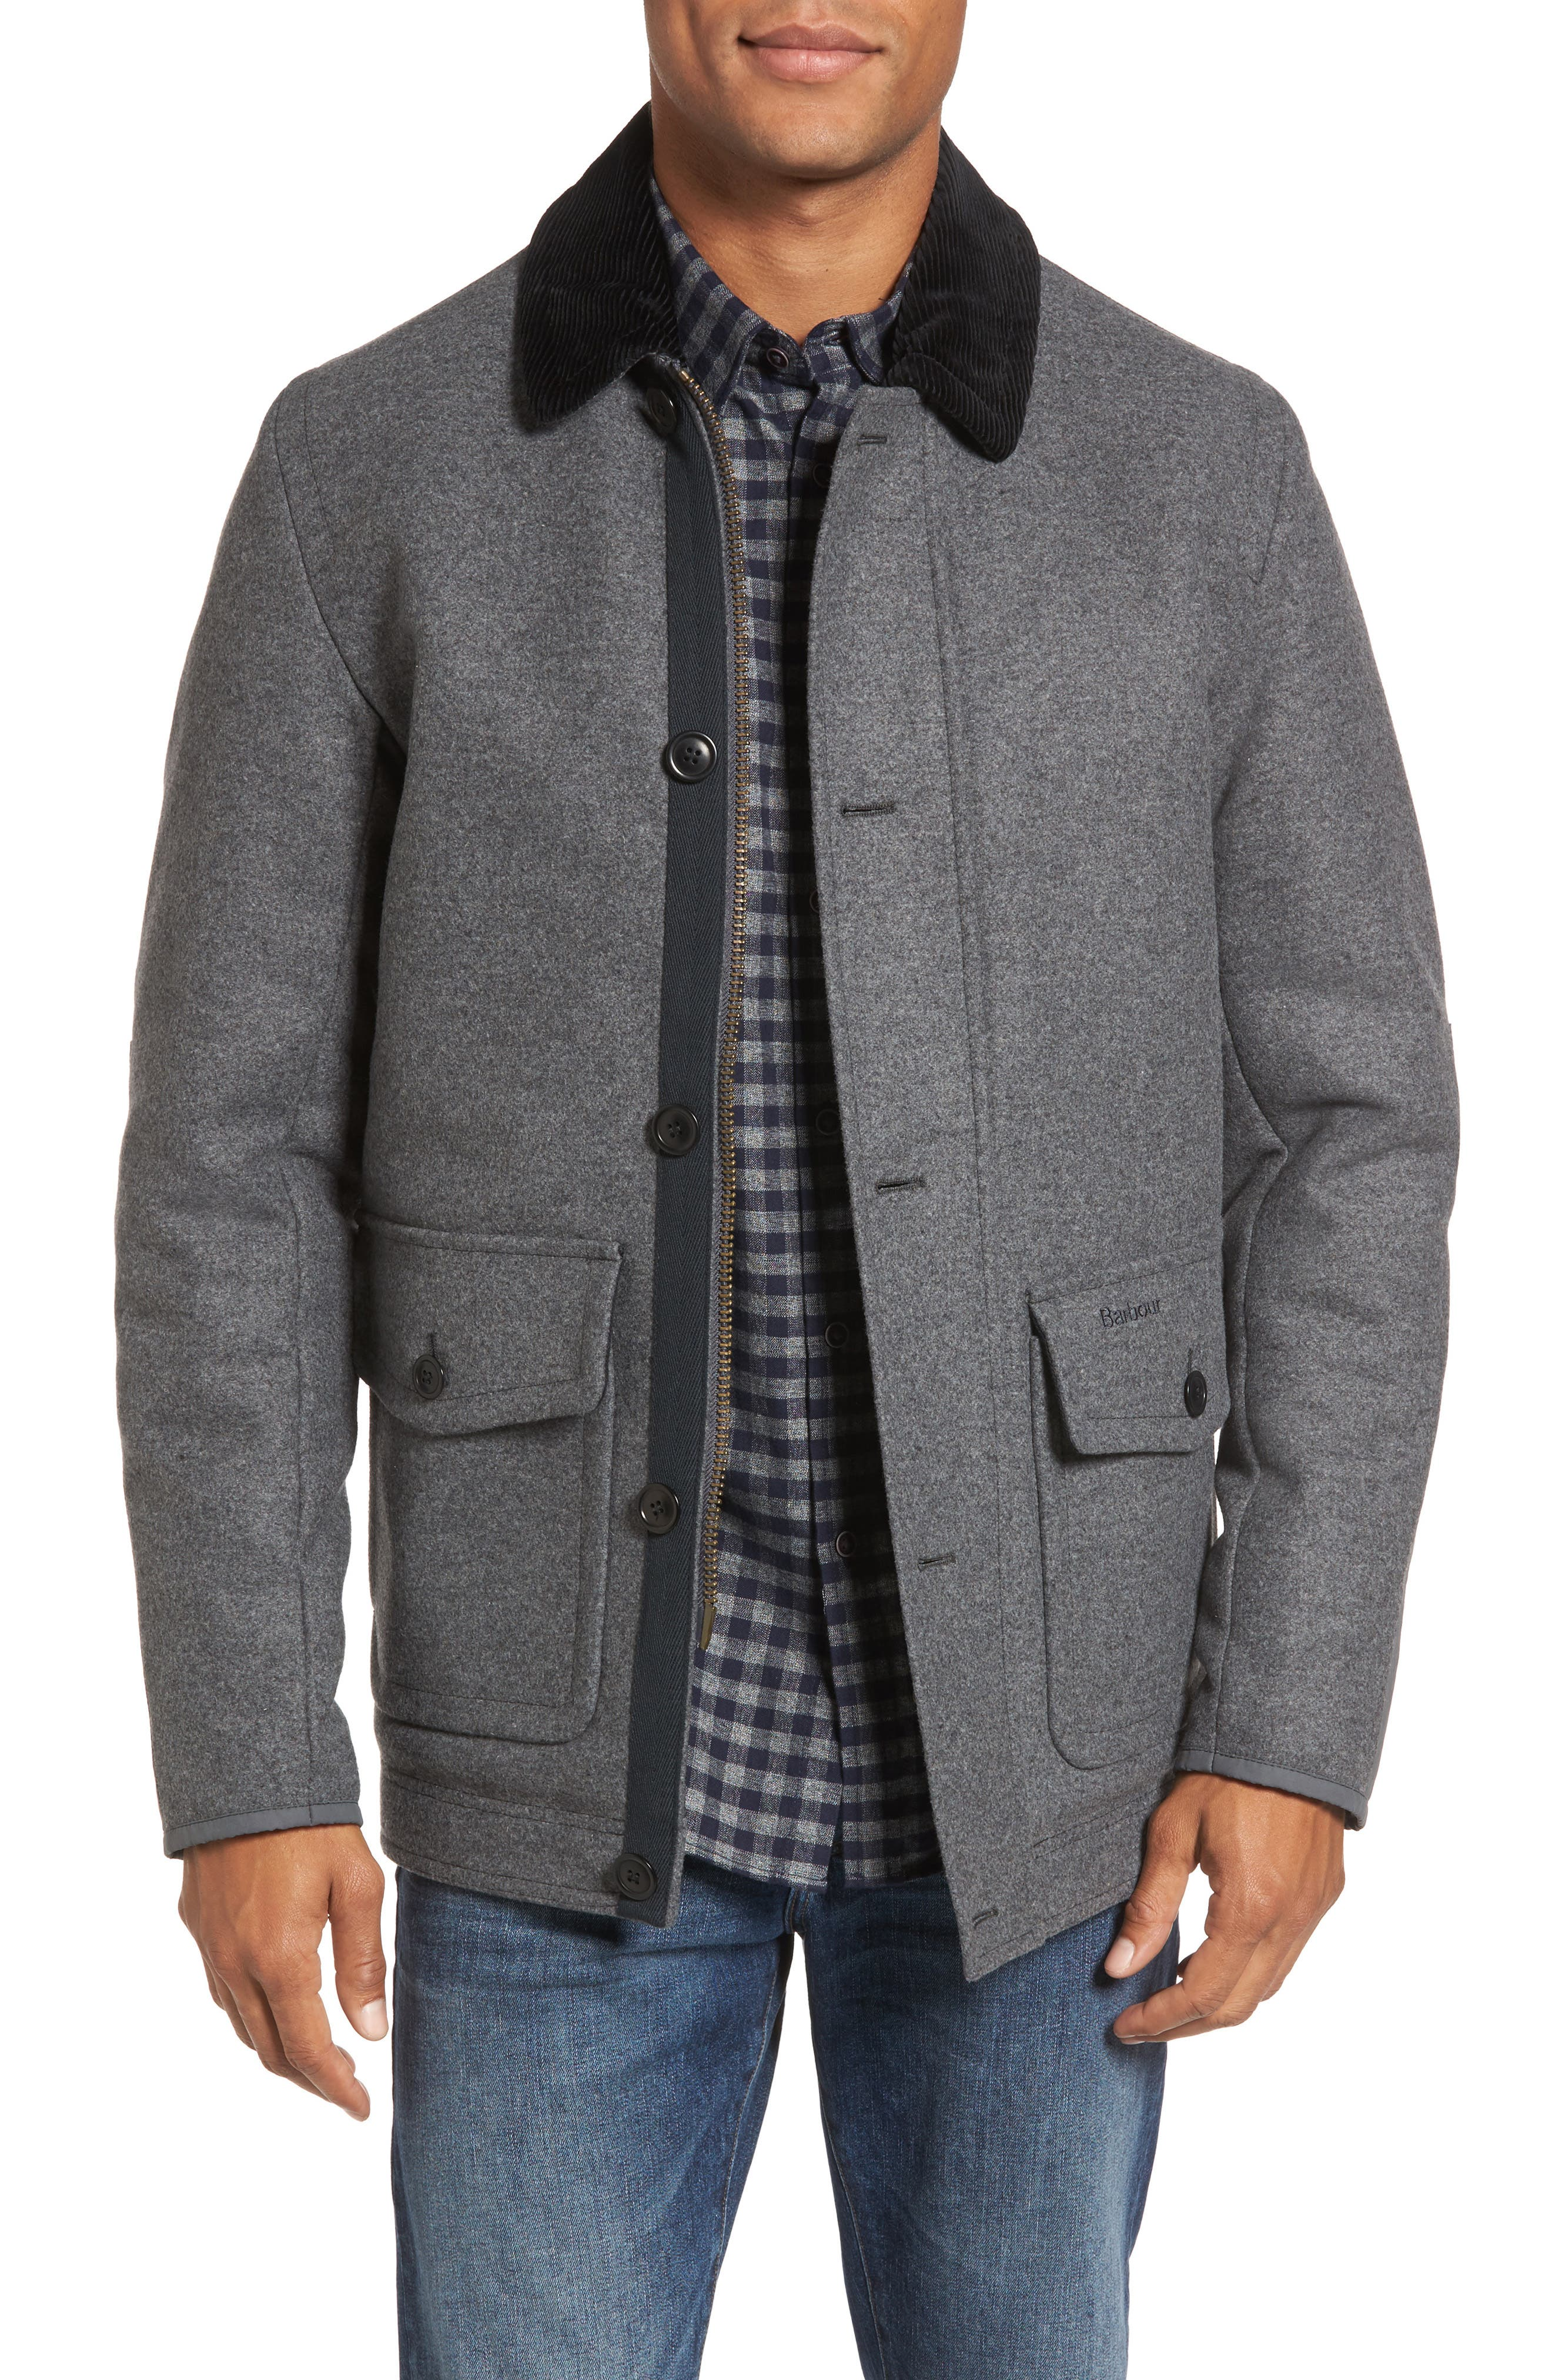 Chingle Wool Blend Deck Jacket,                         Main,                         color, Grey